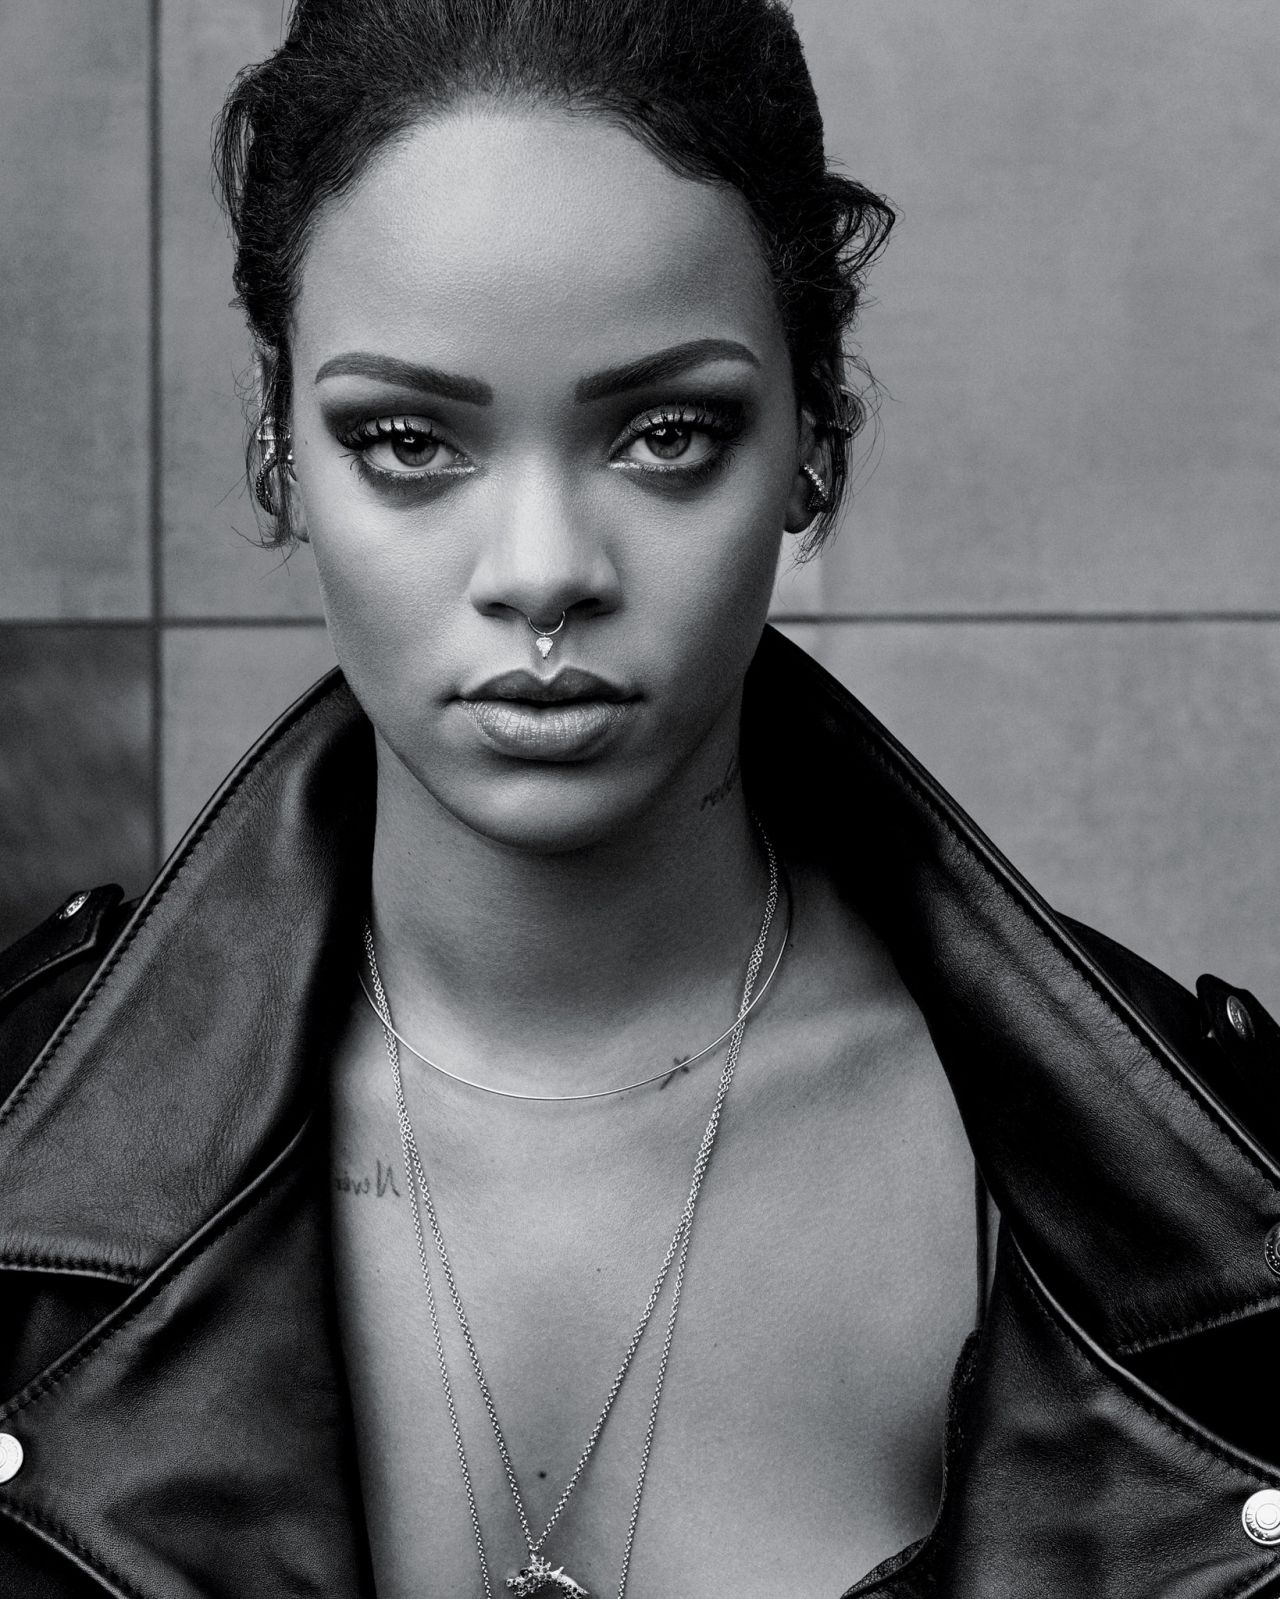 Rihanna News And Photos: Photoshoot For The New York Times Style Magazine